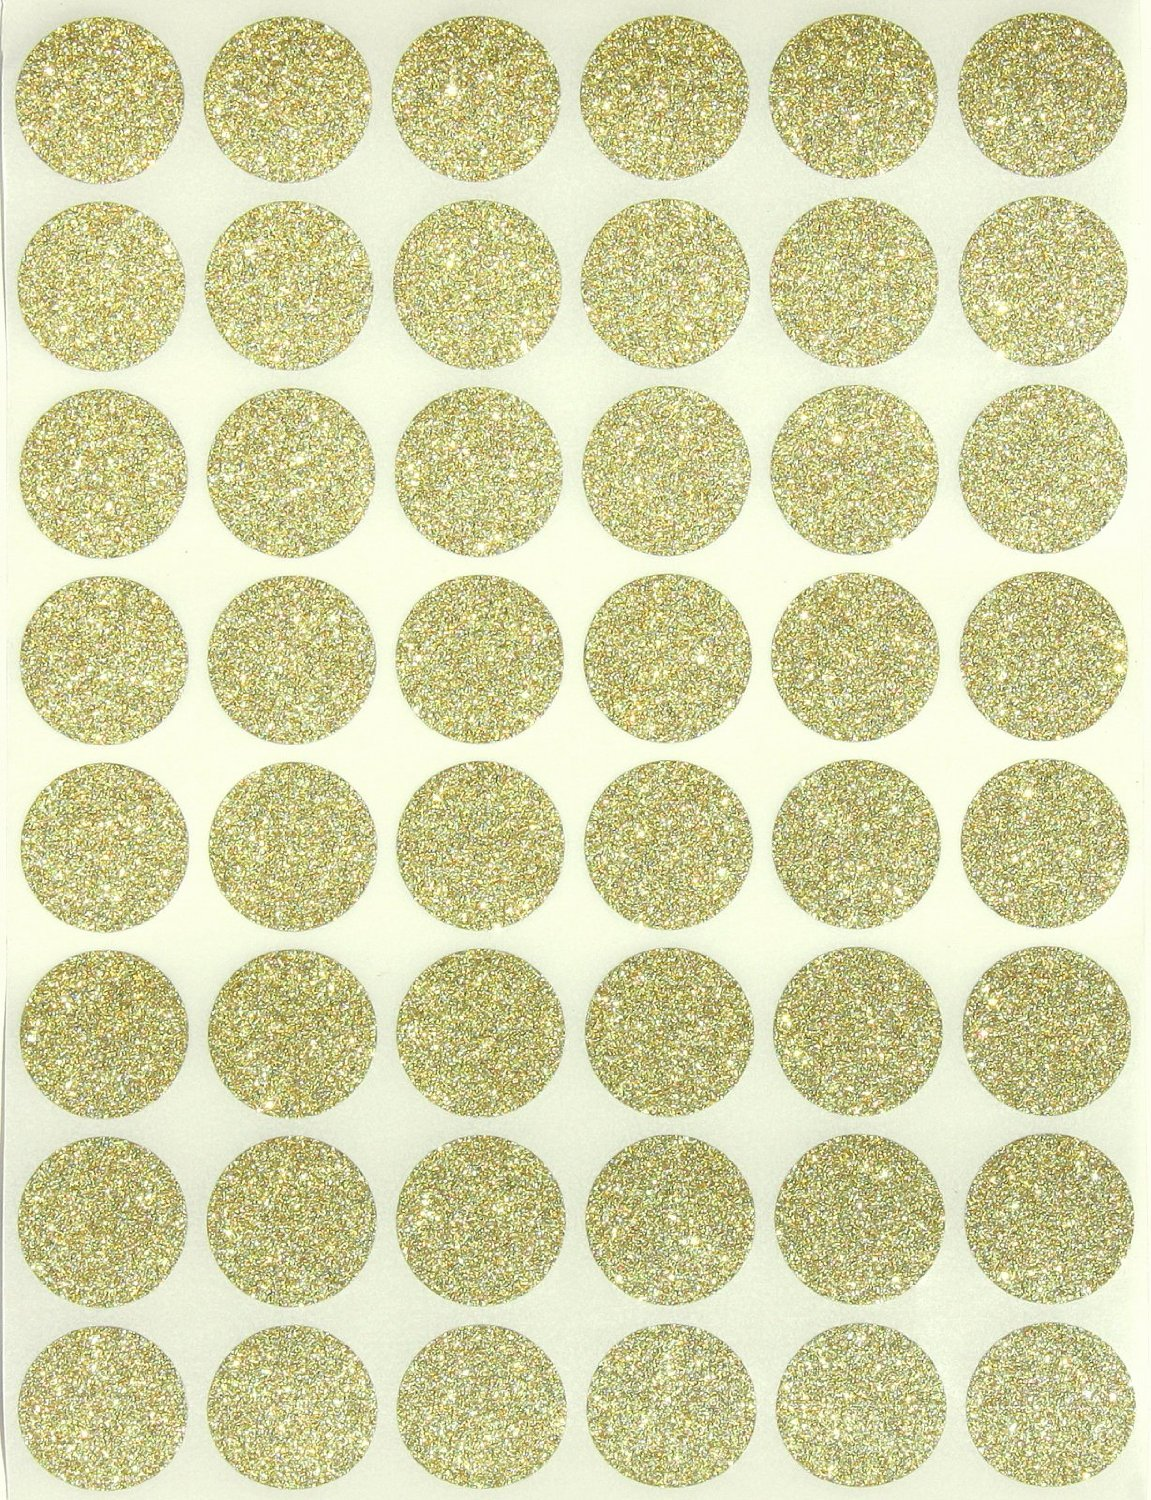 Glitter dot stickers 3 4 round 17 mm color coding labels 0 69 inch